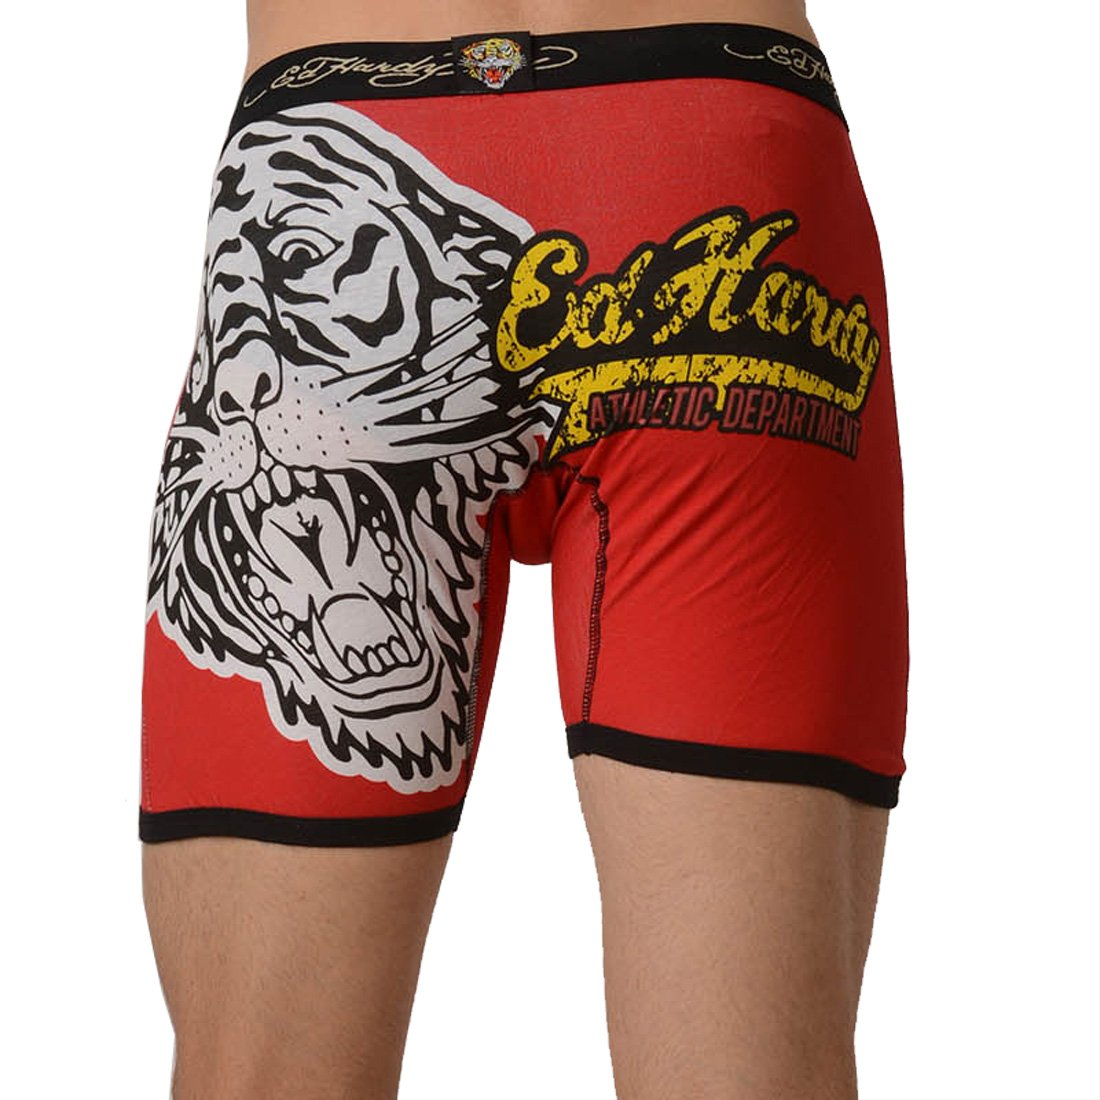 Мужские боксёры-брифы Ed Hardy Men's Tiger Vintage Boxer Brief - Black